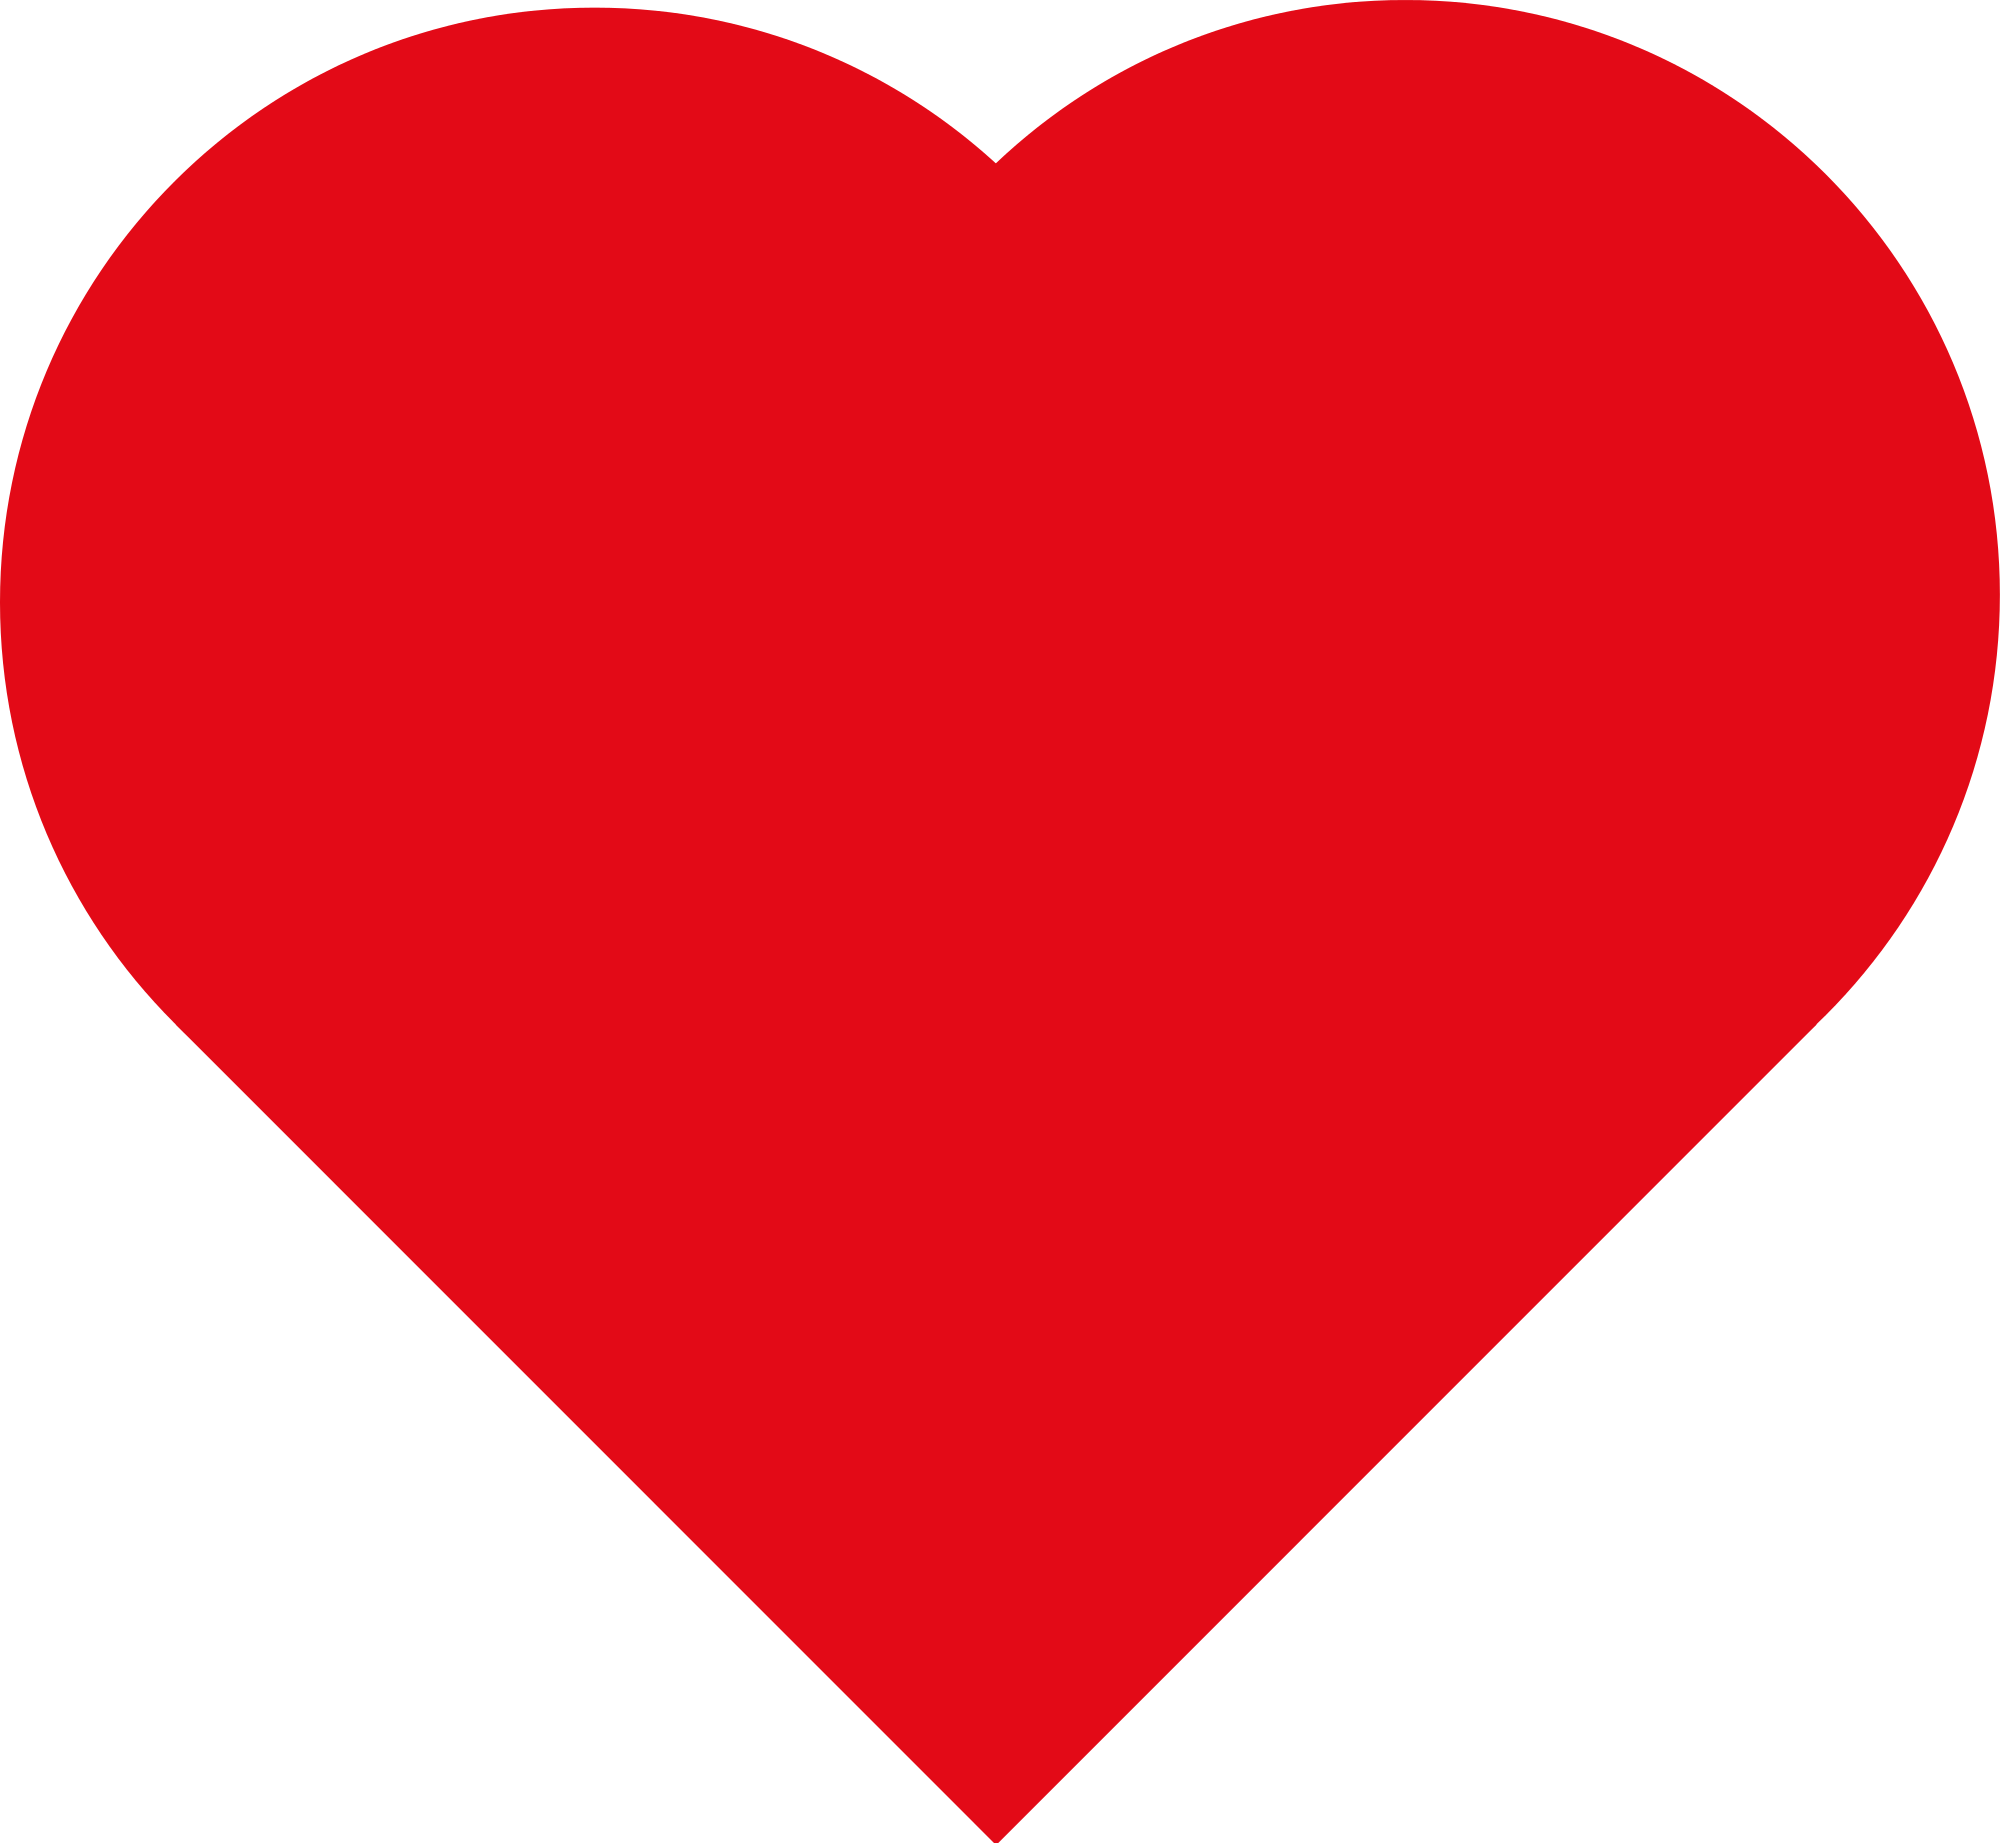 Love Png & Free Love.png Transparent Images #2742 - PNGio